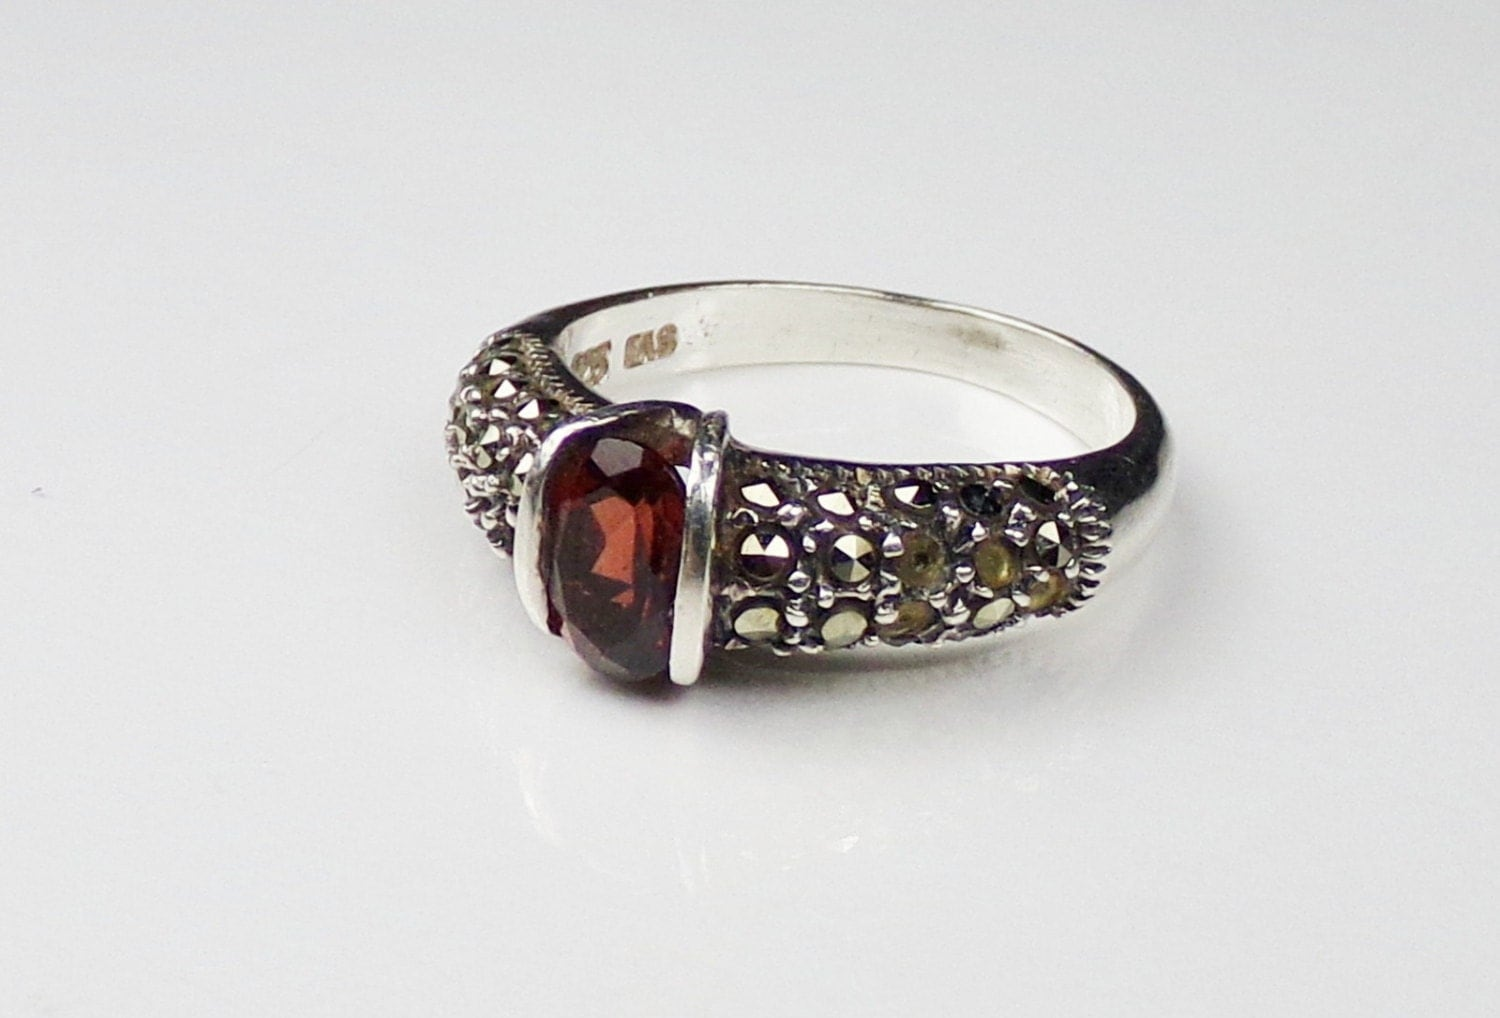 Garnet ring etsy images for Garnet wedding ring meaning